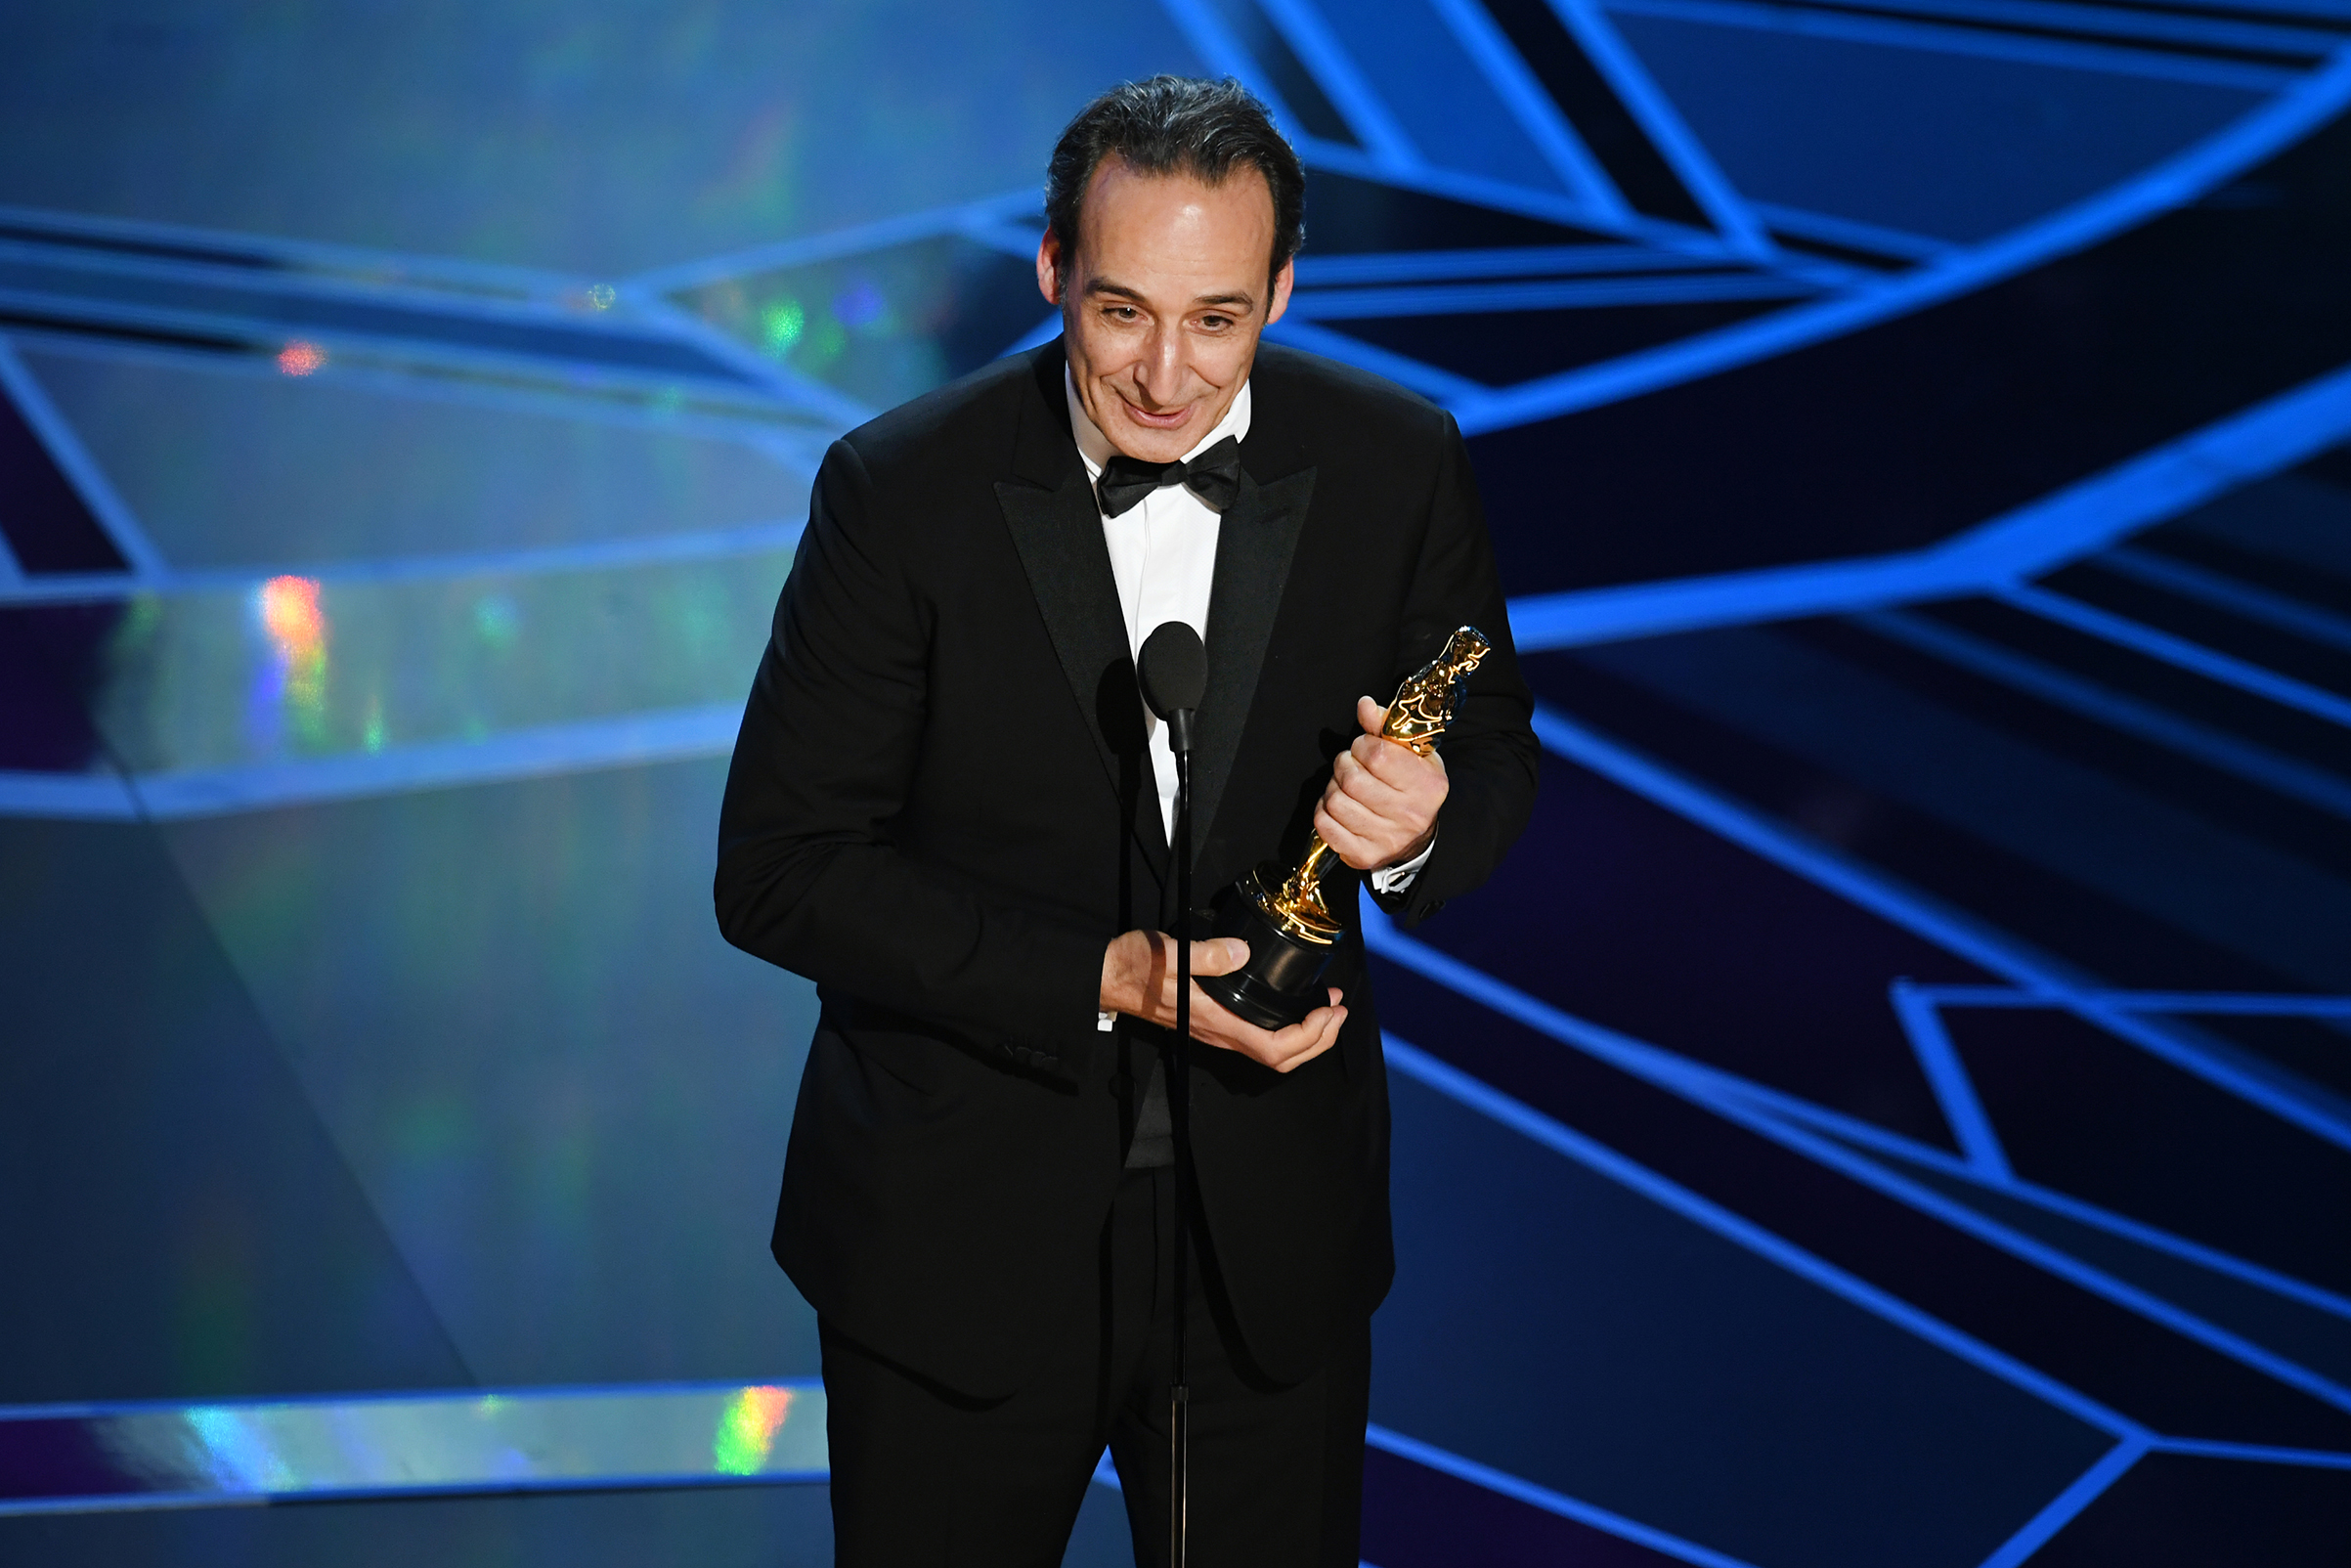 Composer Alexandre Desplat accepts Best Original Score for 'The Shape of Water' onstage during the 90th Annual Academy Awards at the Dolby Theatre at Hollywood & Highland Center on March 4, 2018 in Hollywood.